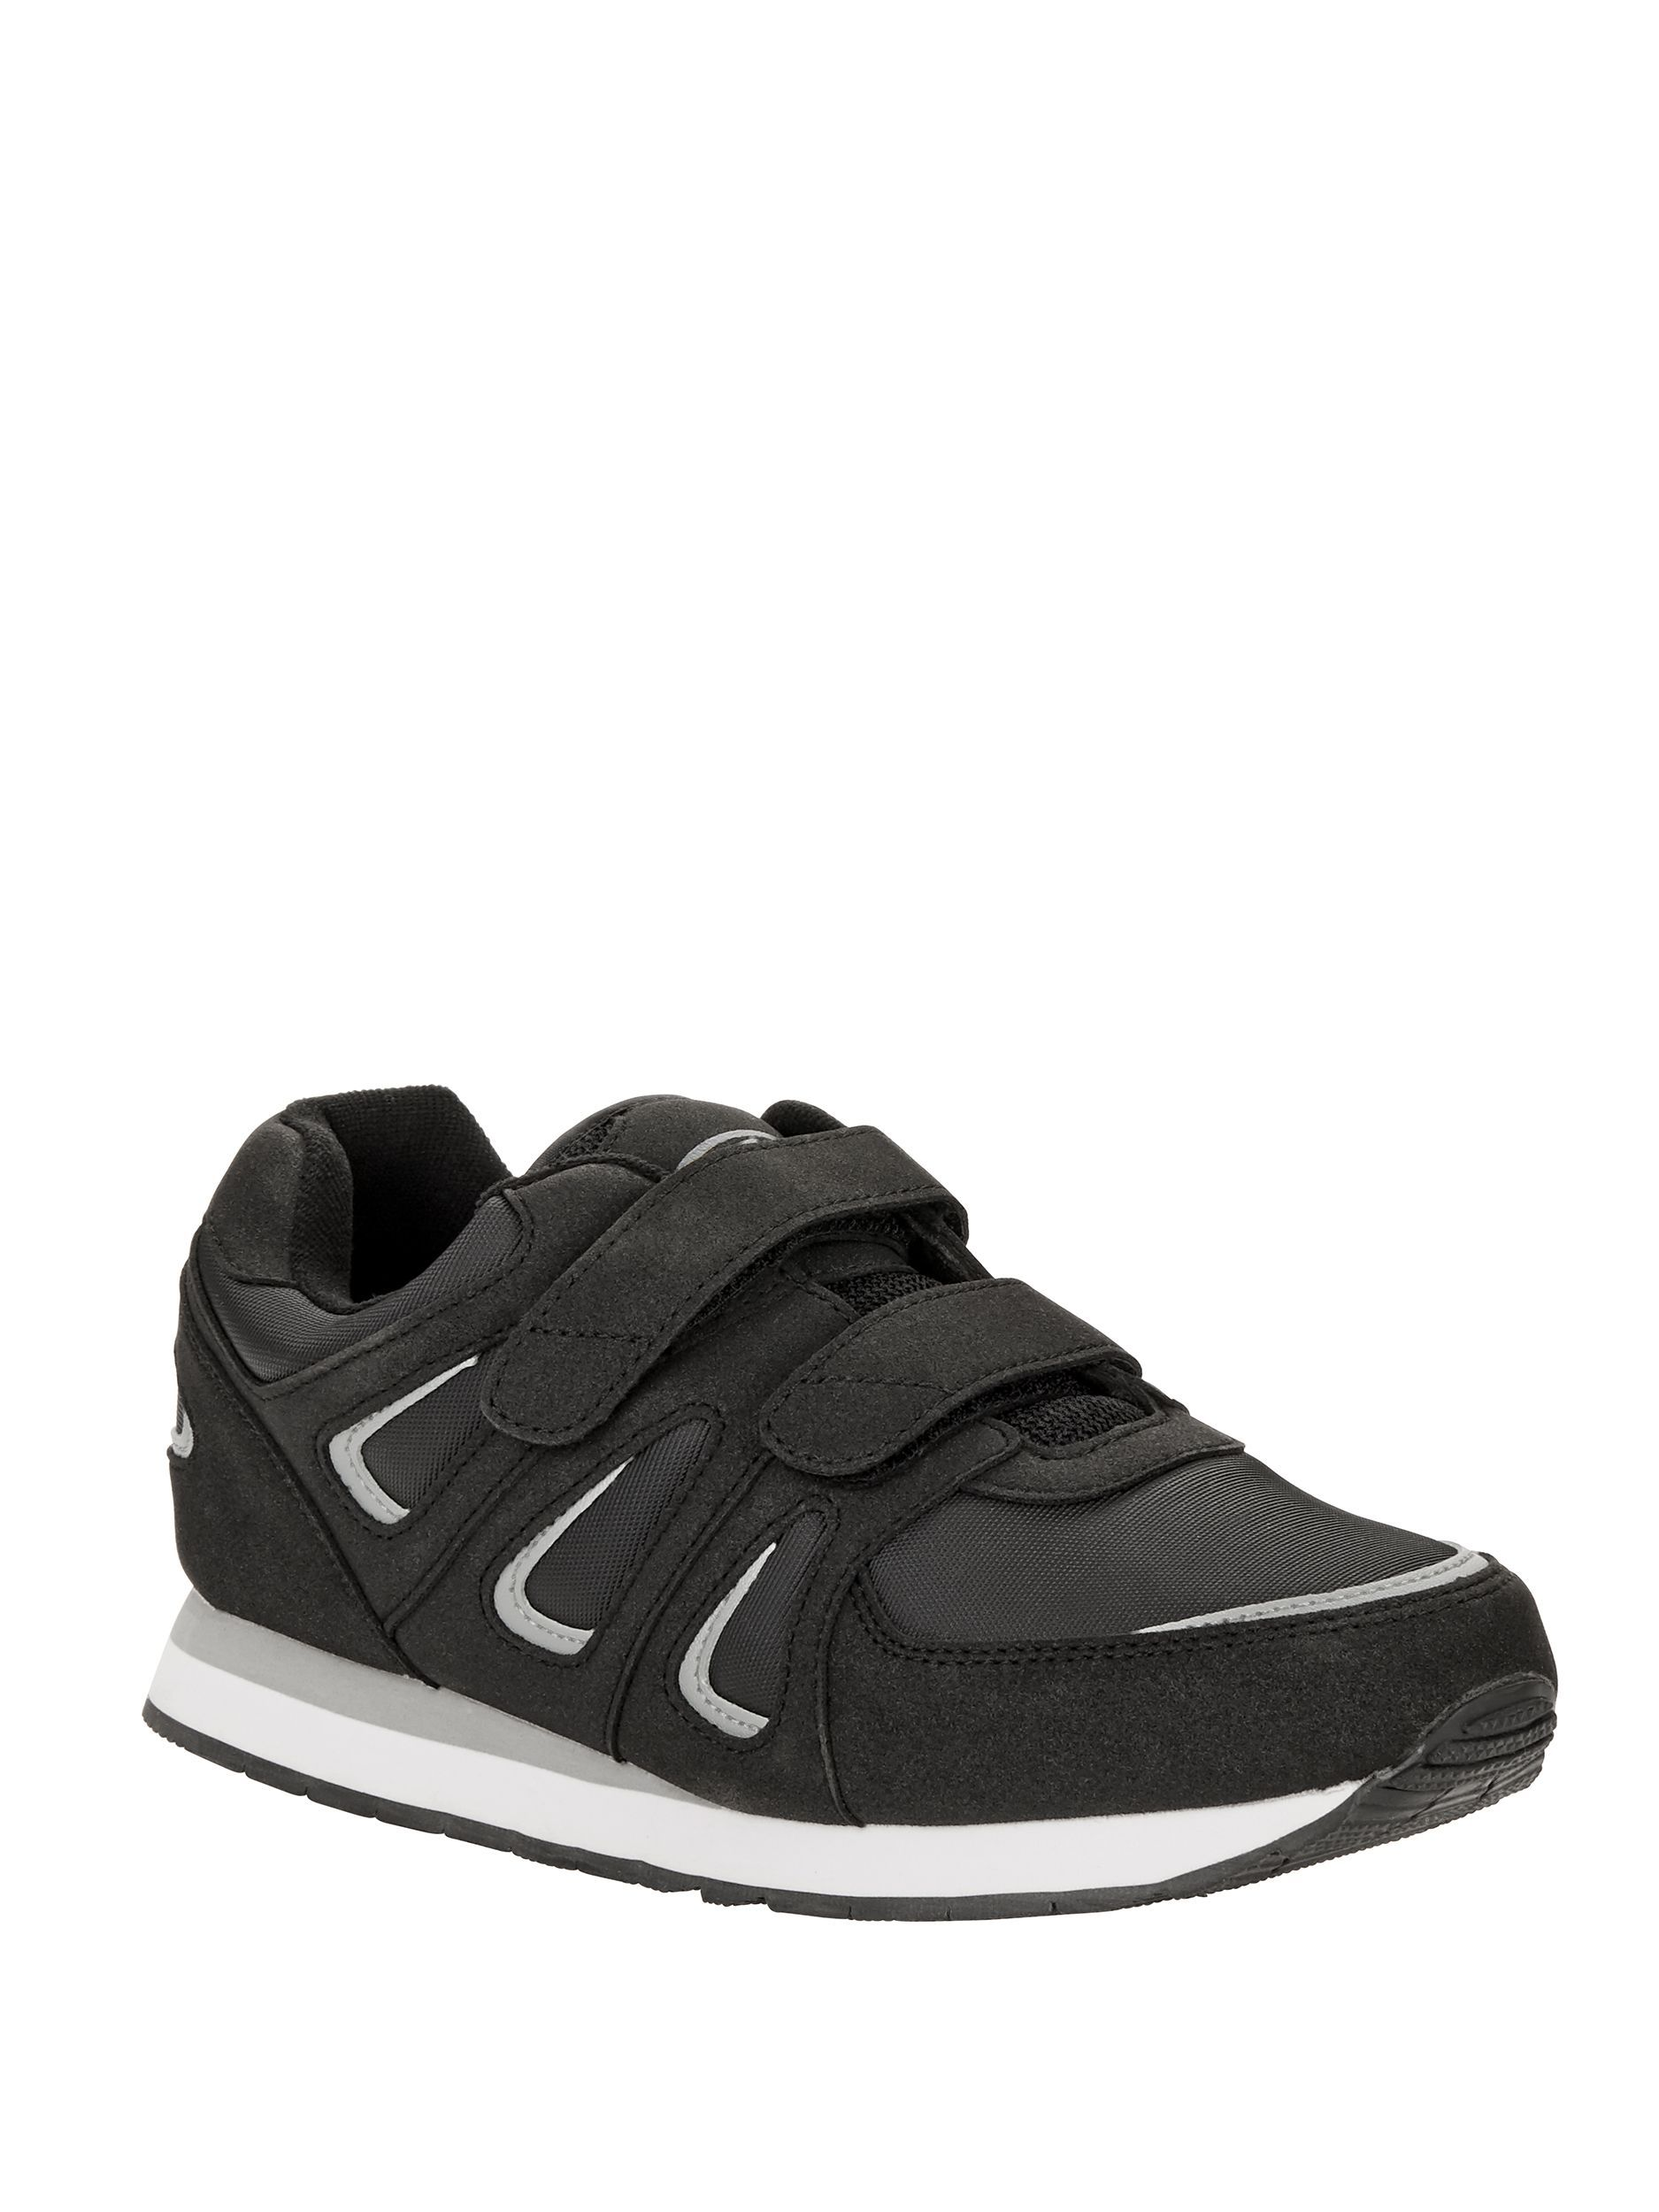 Athletic Works Athletic Works Men S Silver Series Athletic Shoe Walmart Com Athletic Shoes Nike Shoes Women Nike Shoes Outfits [ 2500 x 1875 Pixel ]